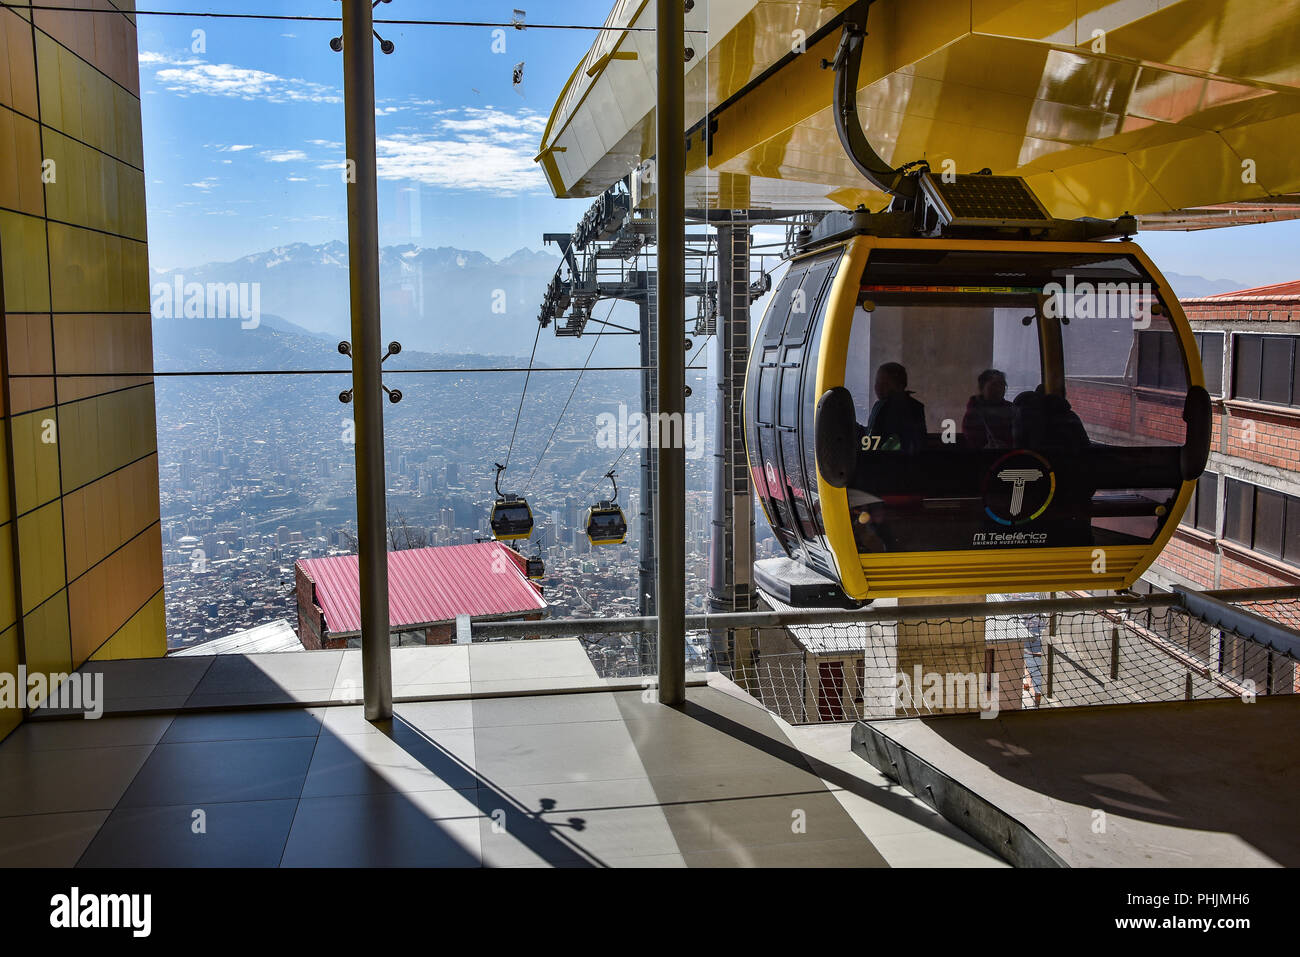 Mi Teleferico, the public transport cable car system, in El Alto, La Paz, Bolivia - Stock Image